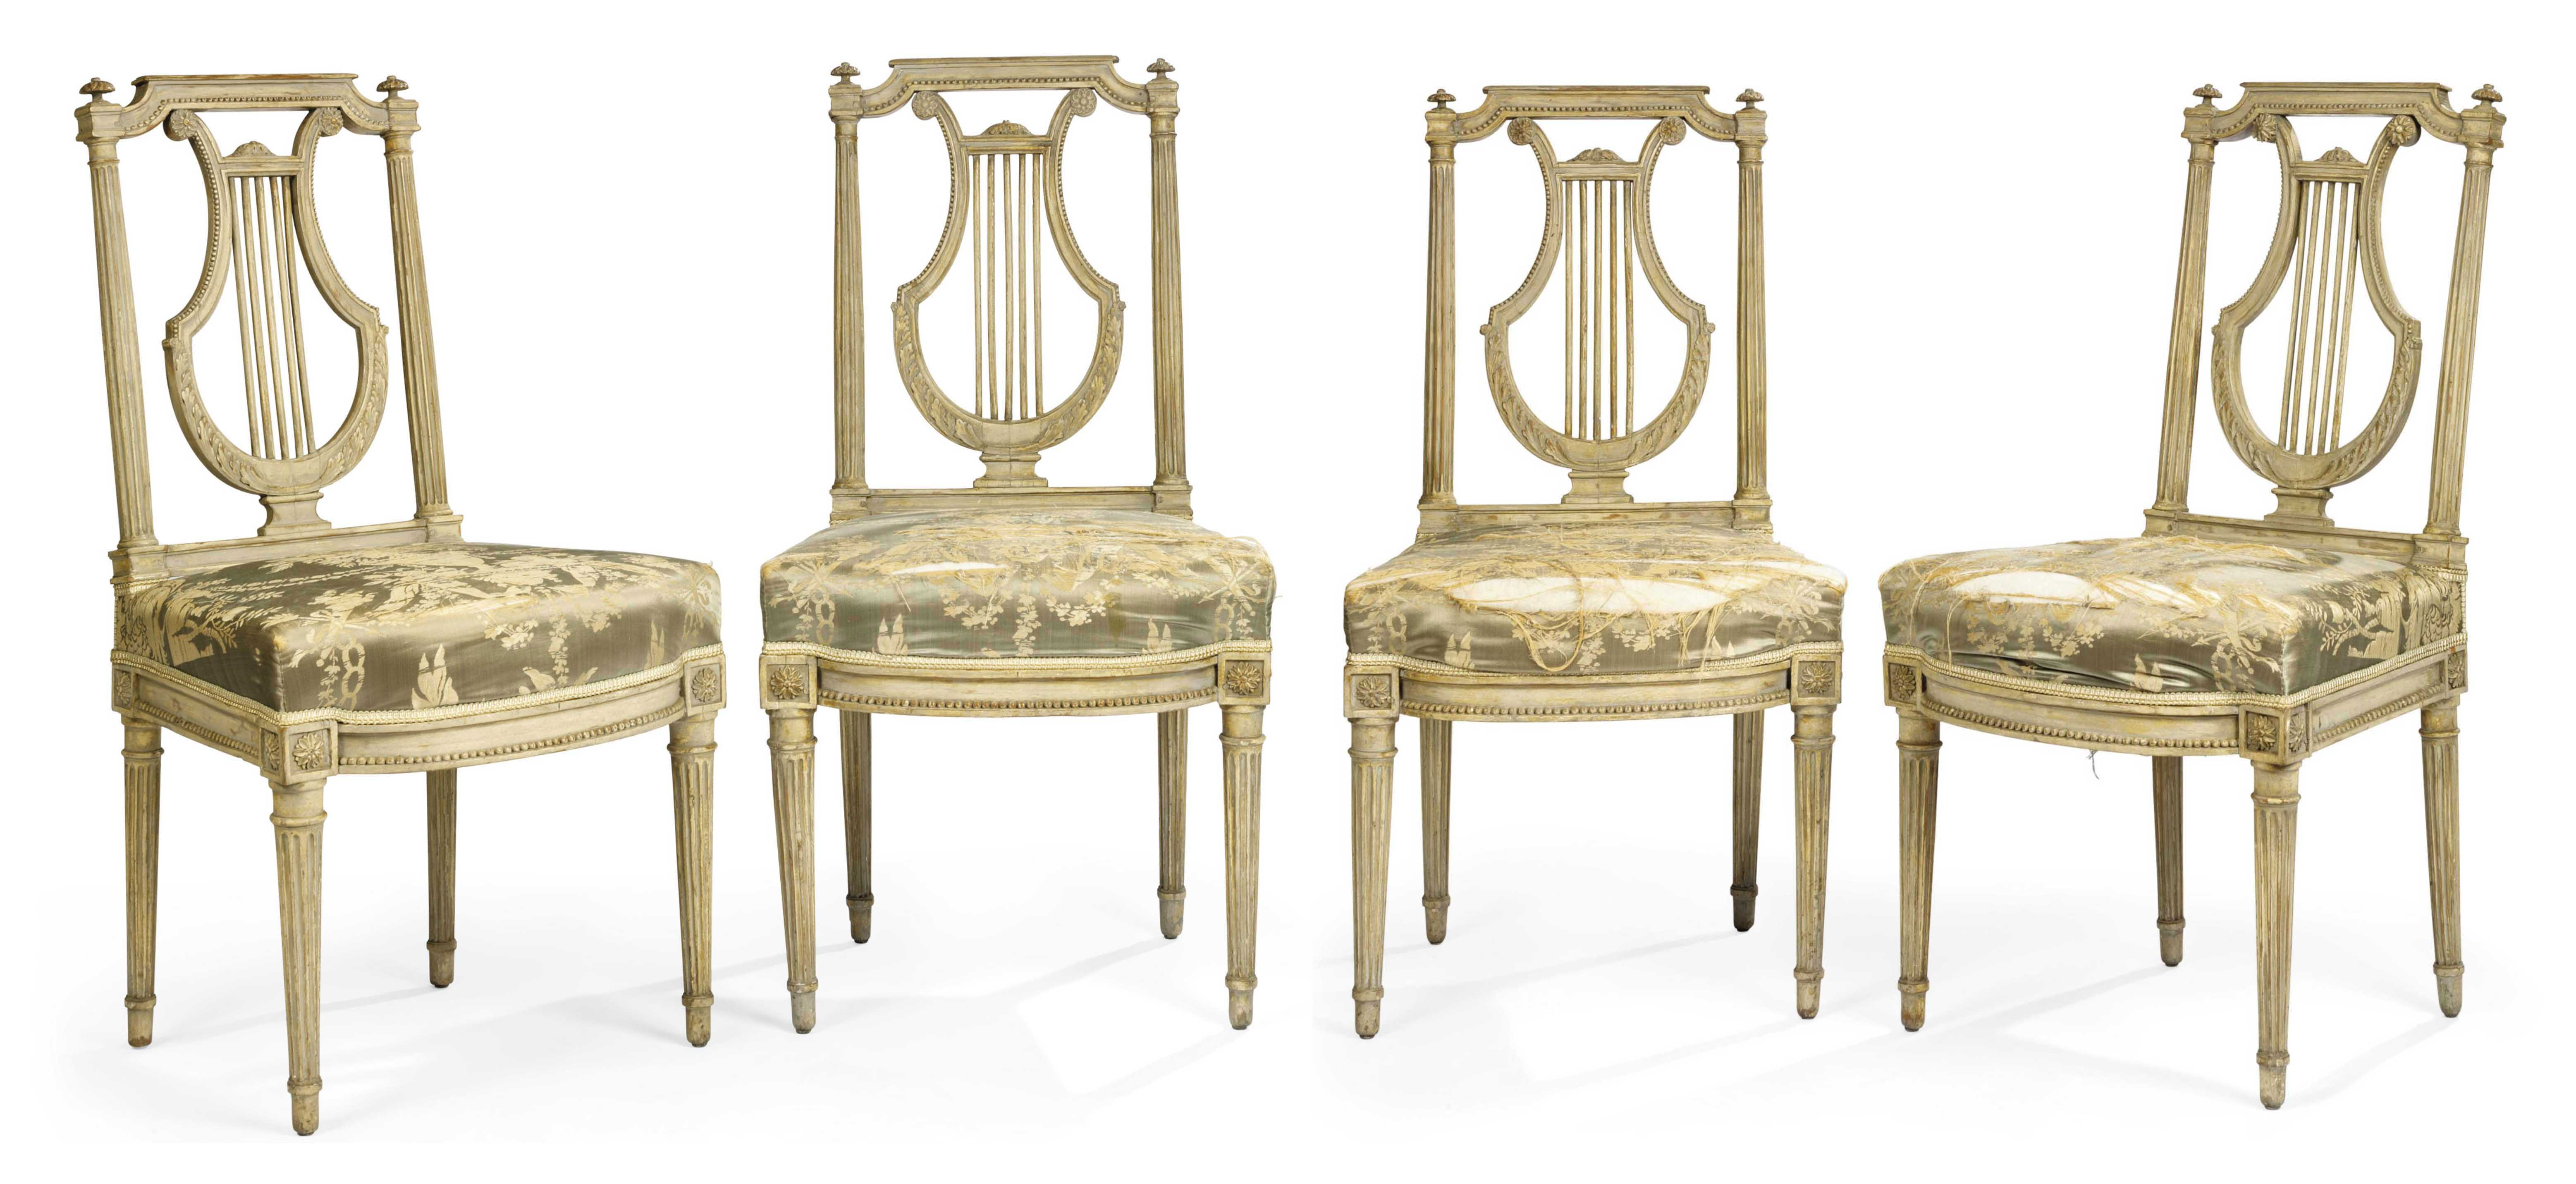 A SET OF FOUR LOUIS XVI PALE-GREY PAINTED SIDE CHAIRS